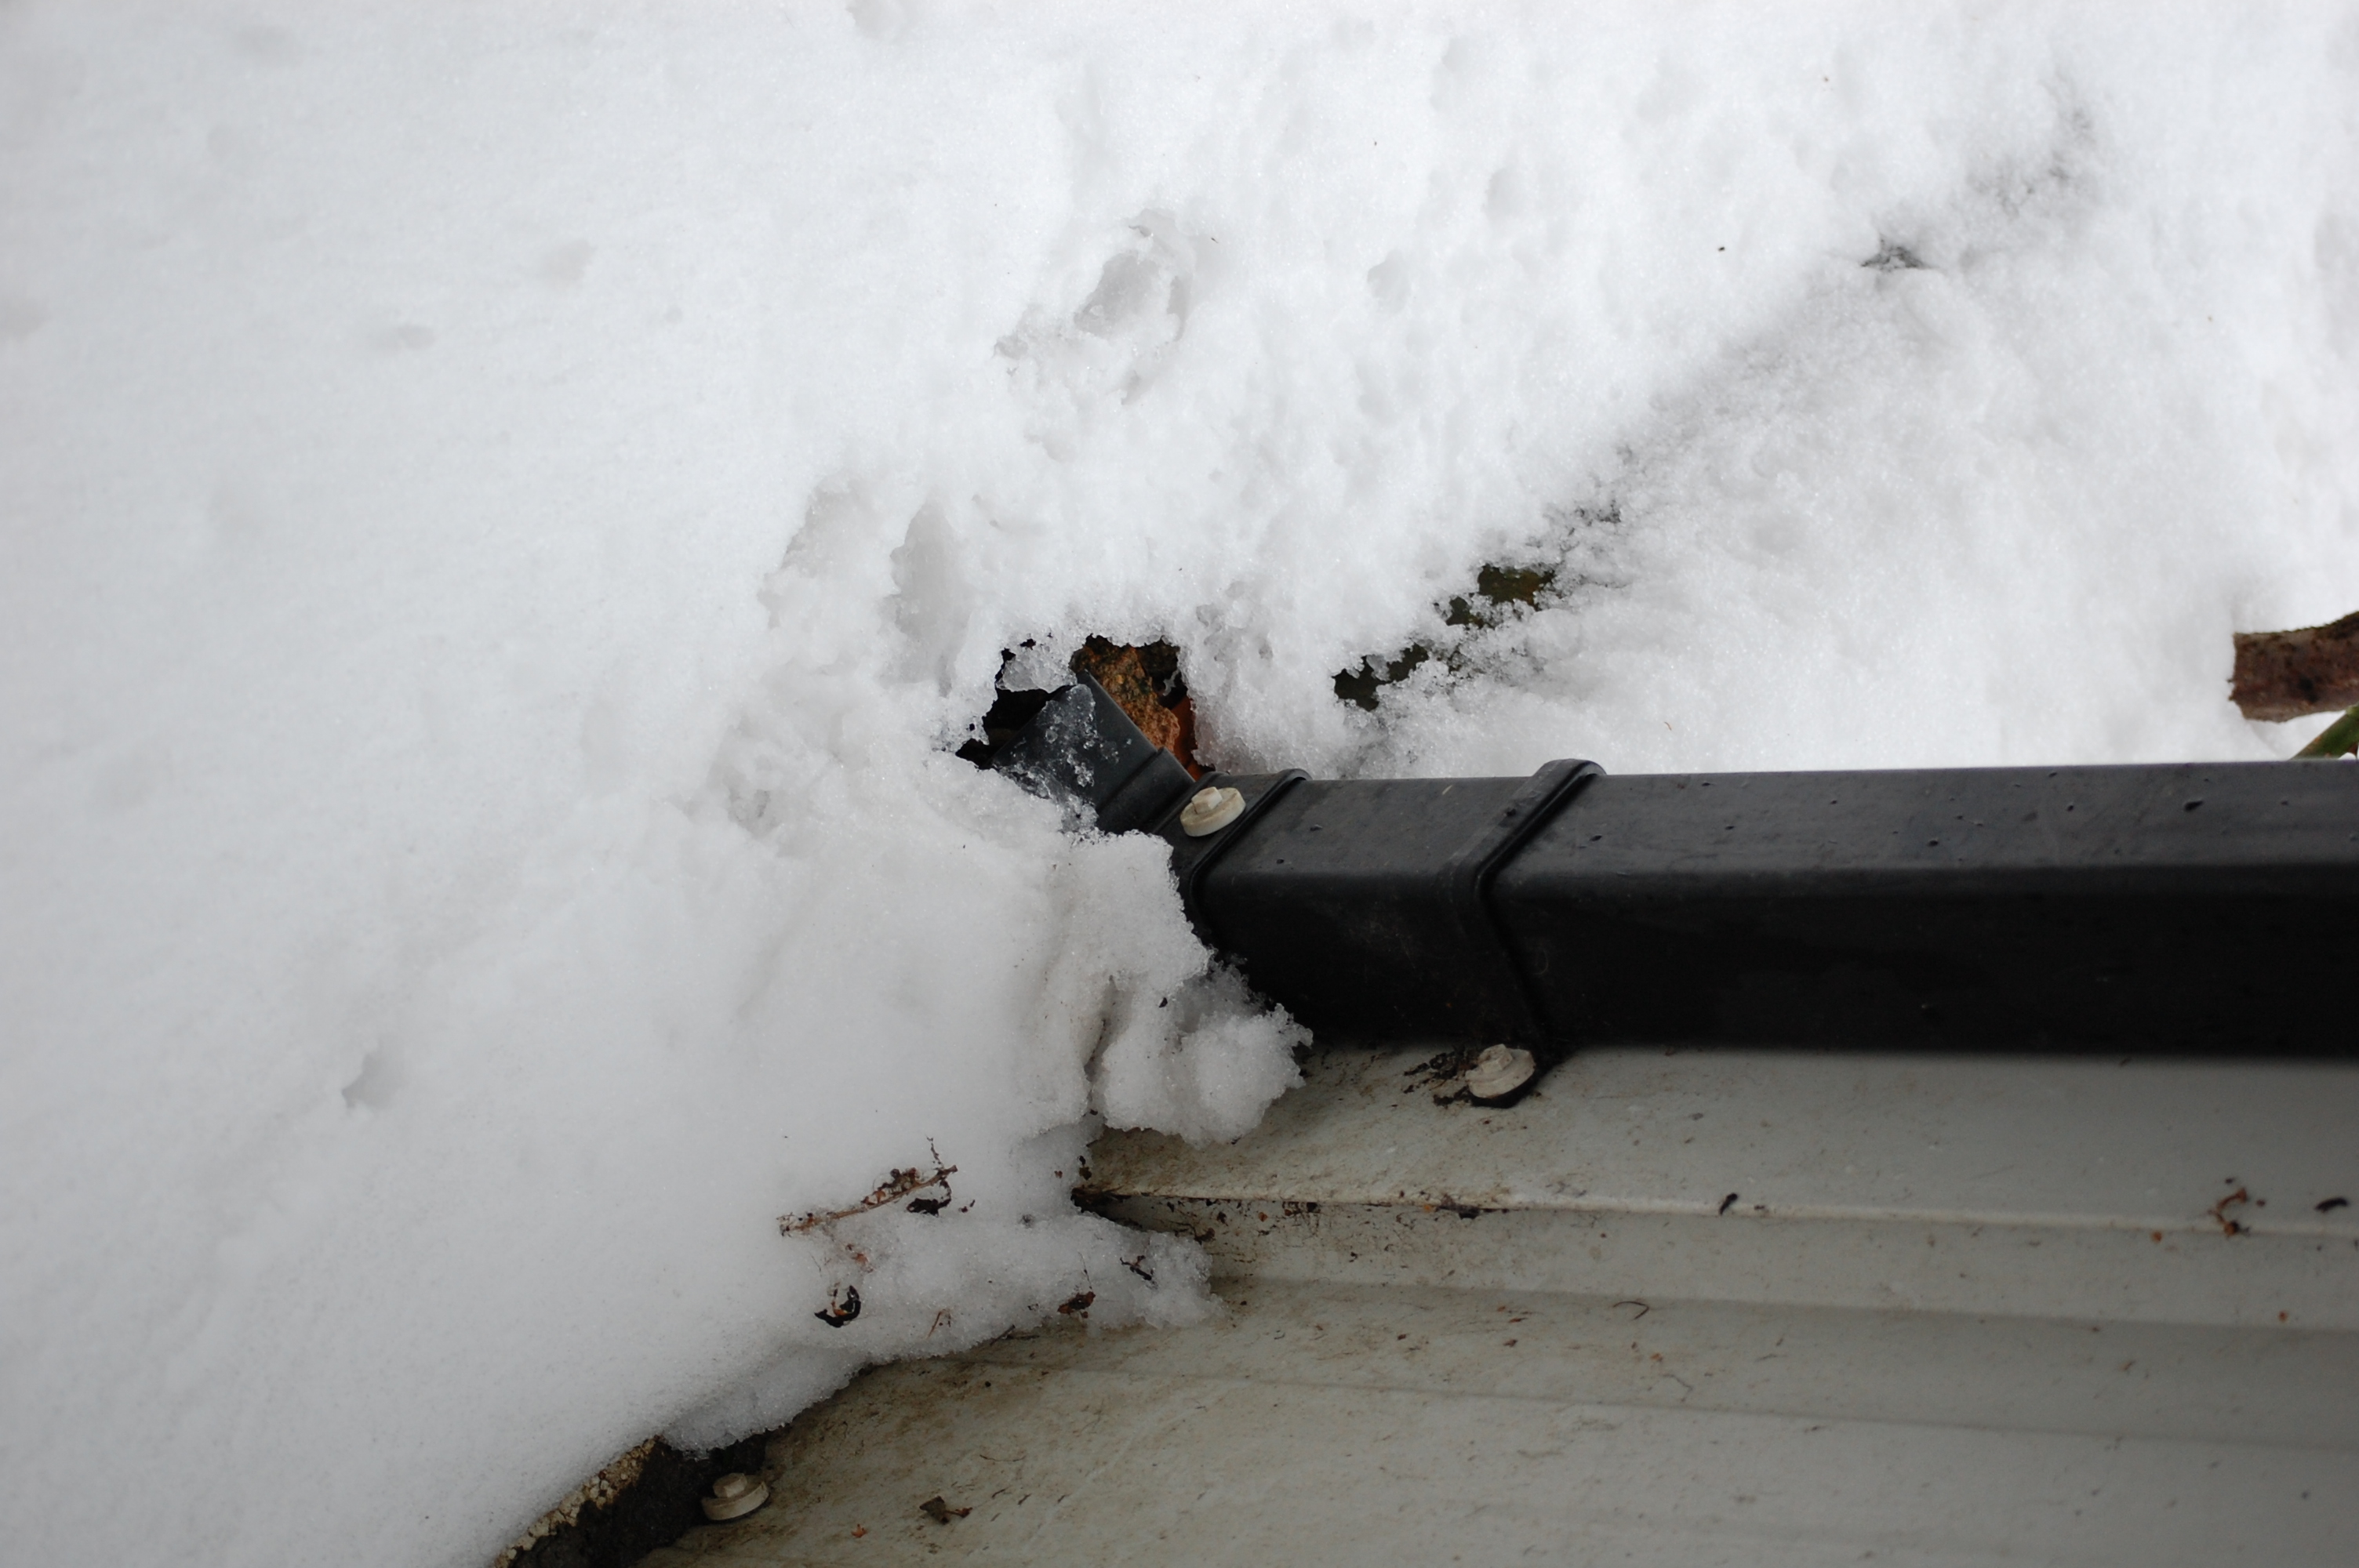 Note surface water drains and gully traps around your home, they can overflow and flood as snow melts